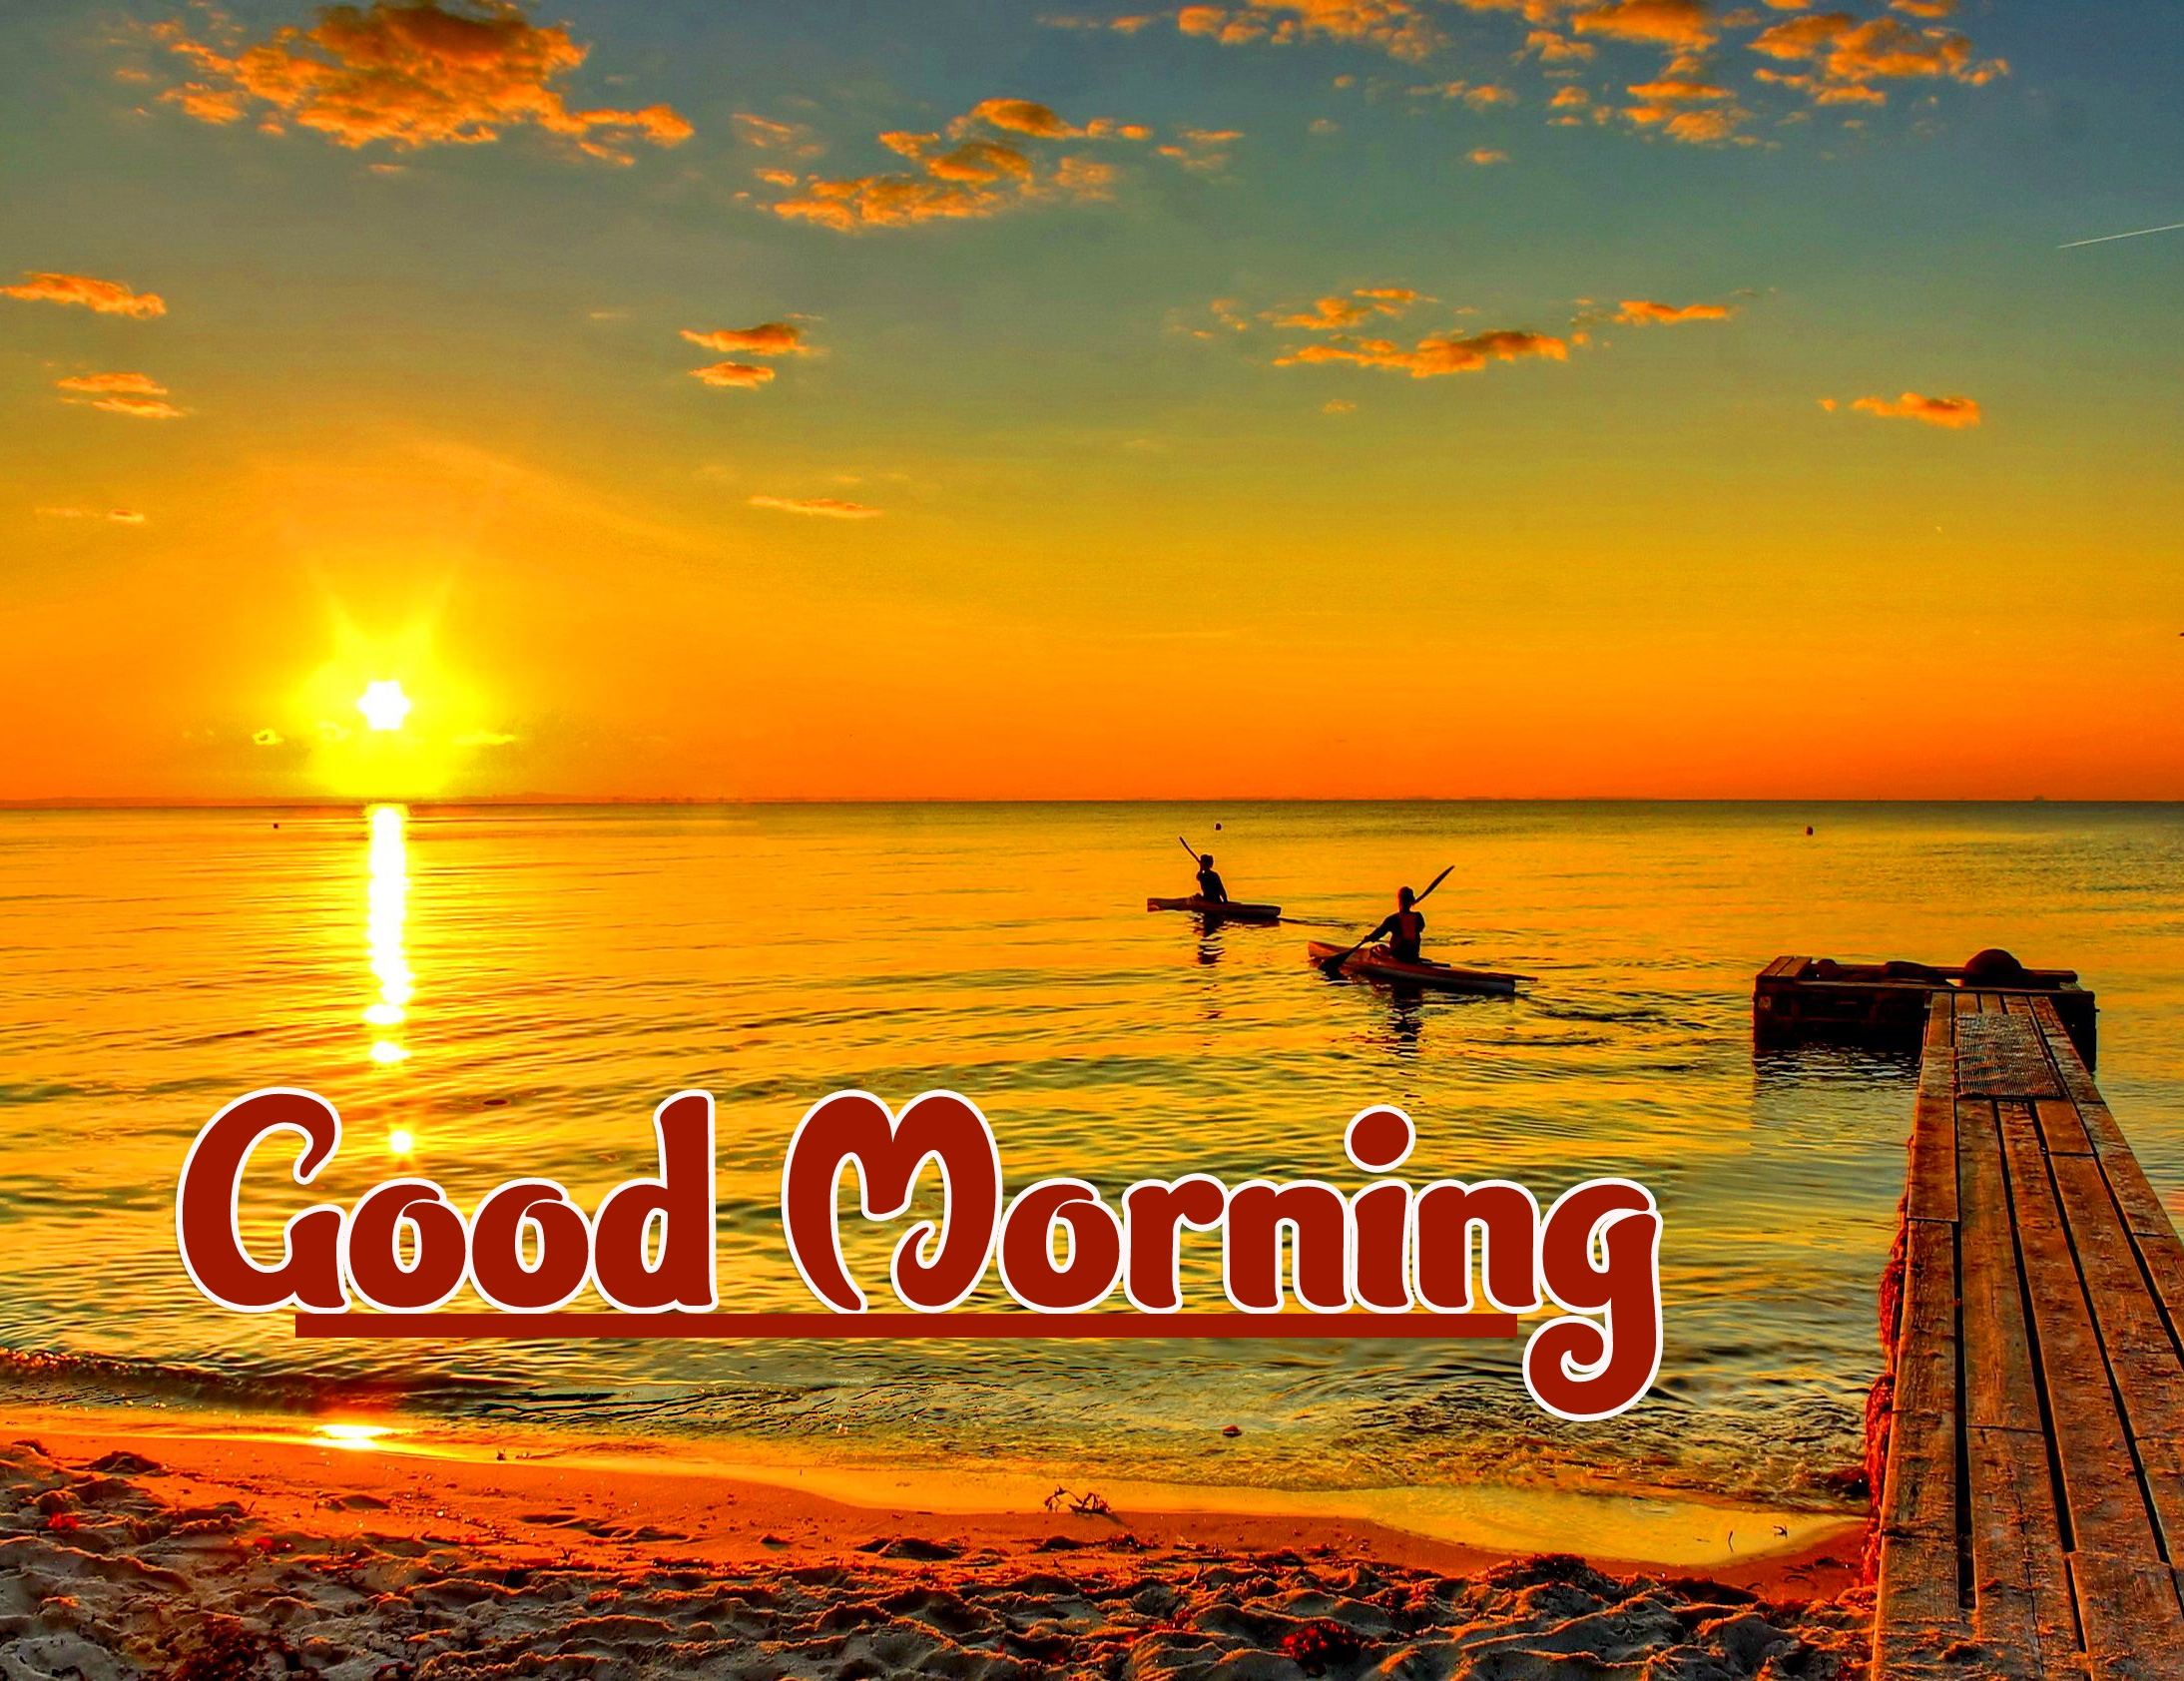 Nature 2021 Good Morning Wallpaper Pics Photo Download